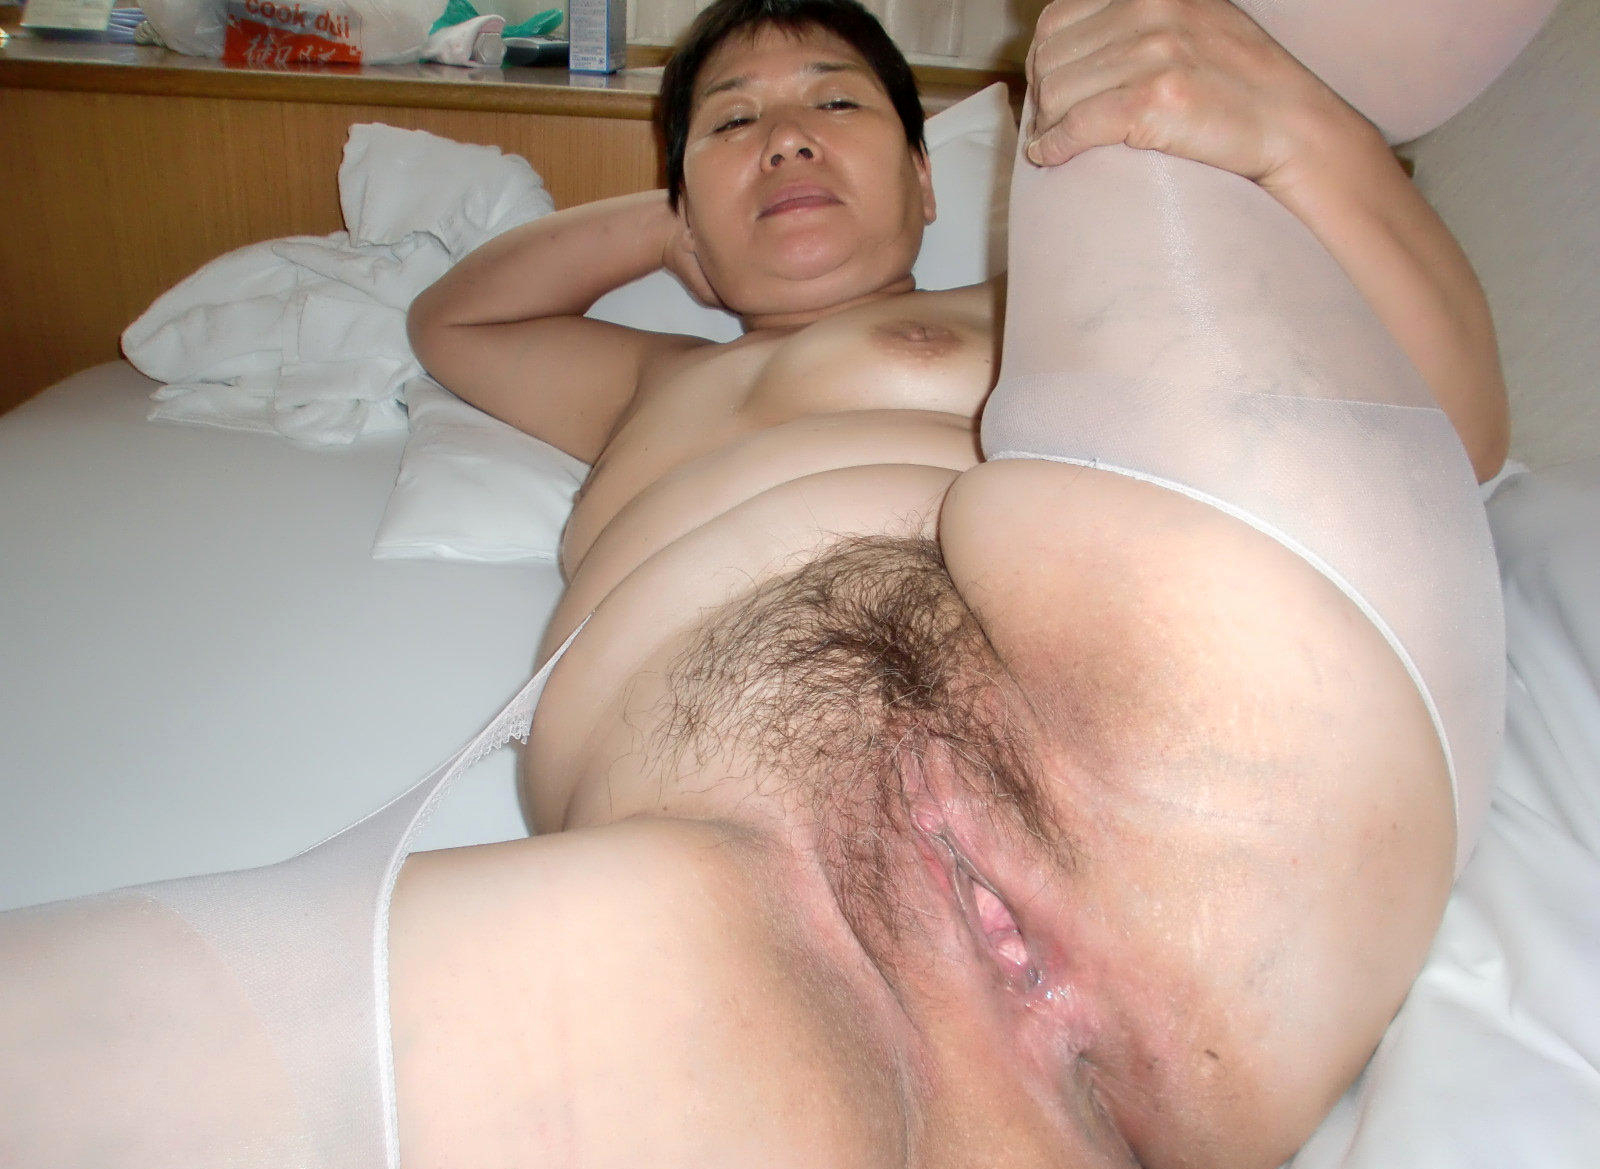 Cheaply got, asian tranny granny porn seems excellent